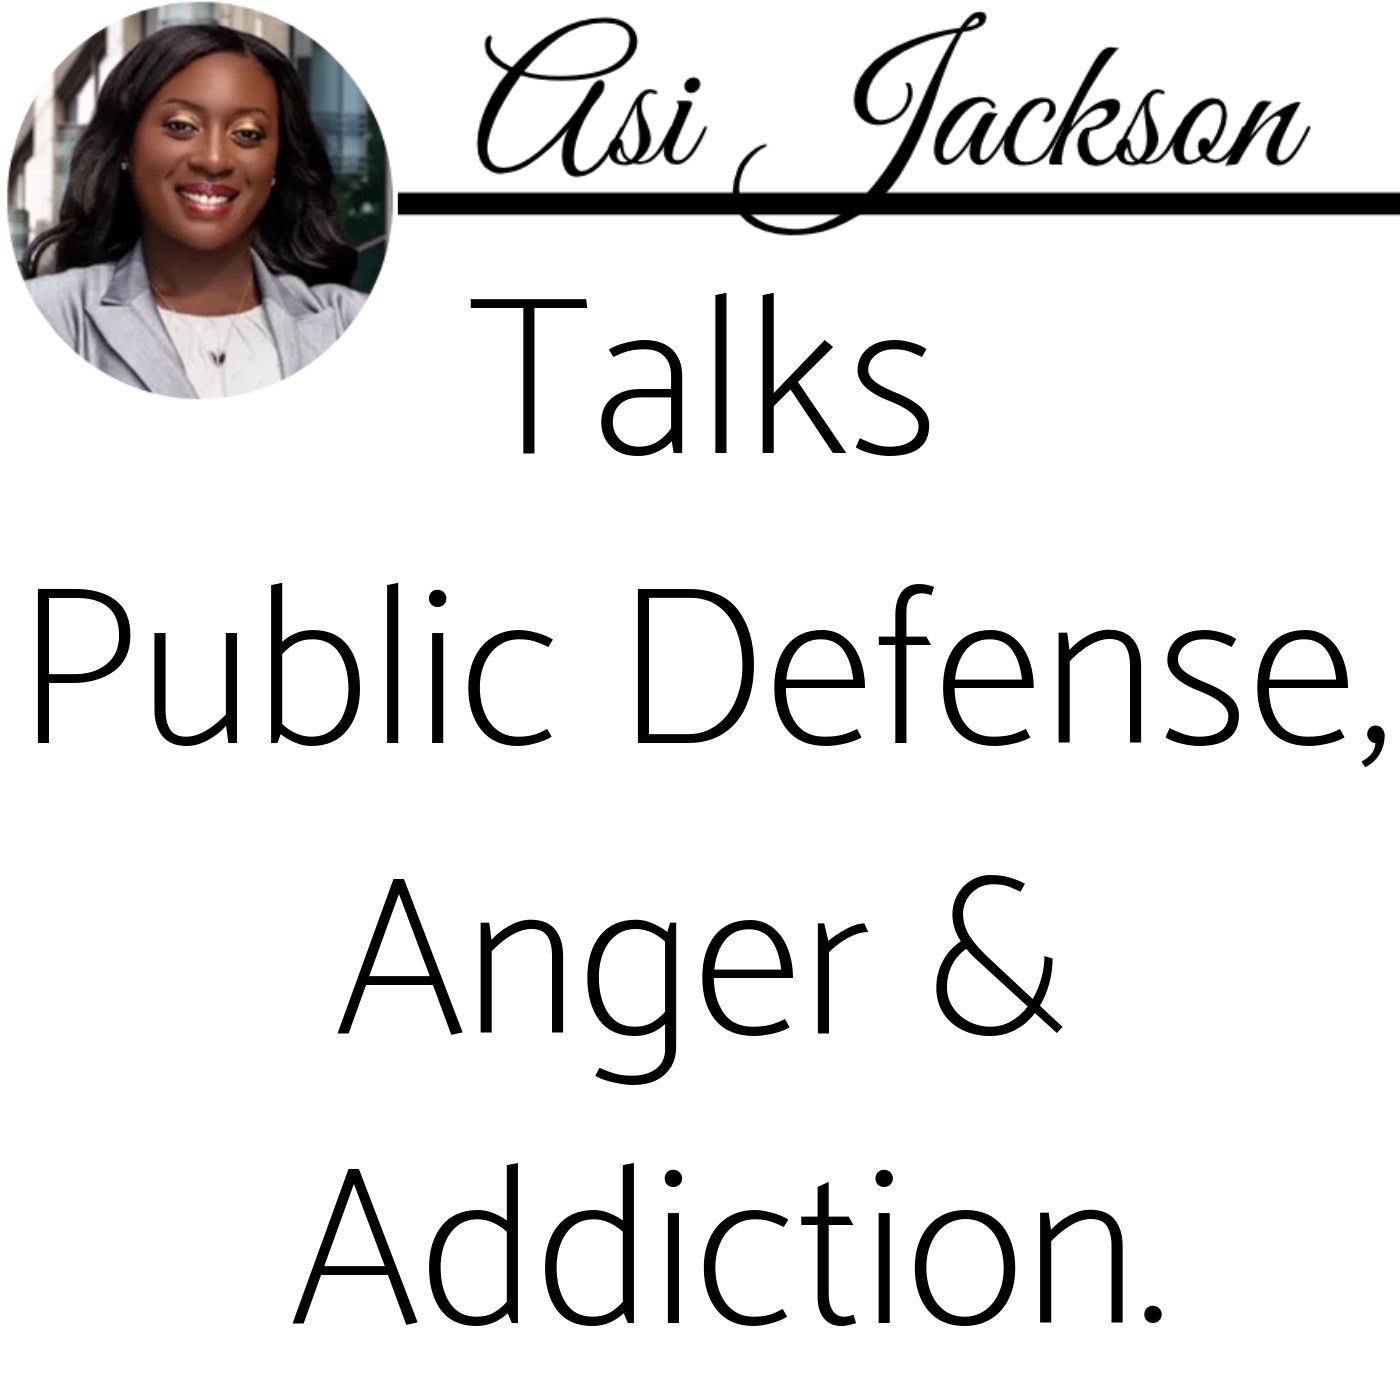 Part 2 of 3: Asi Jackson Talks Public Defense, Anger & Addiction.